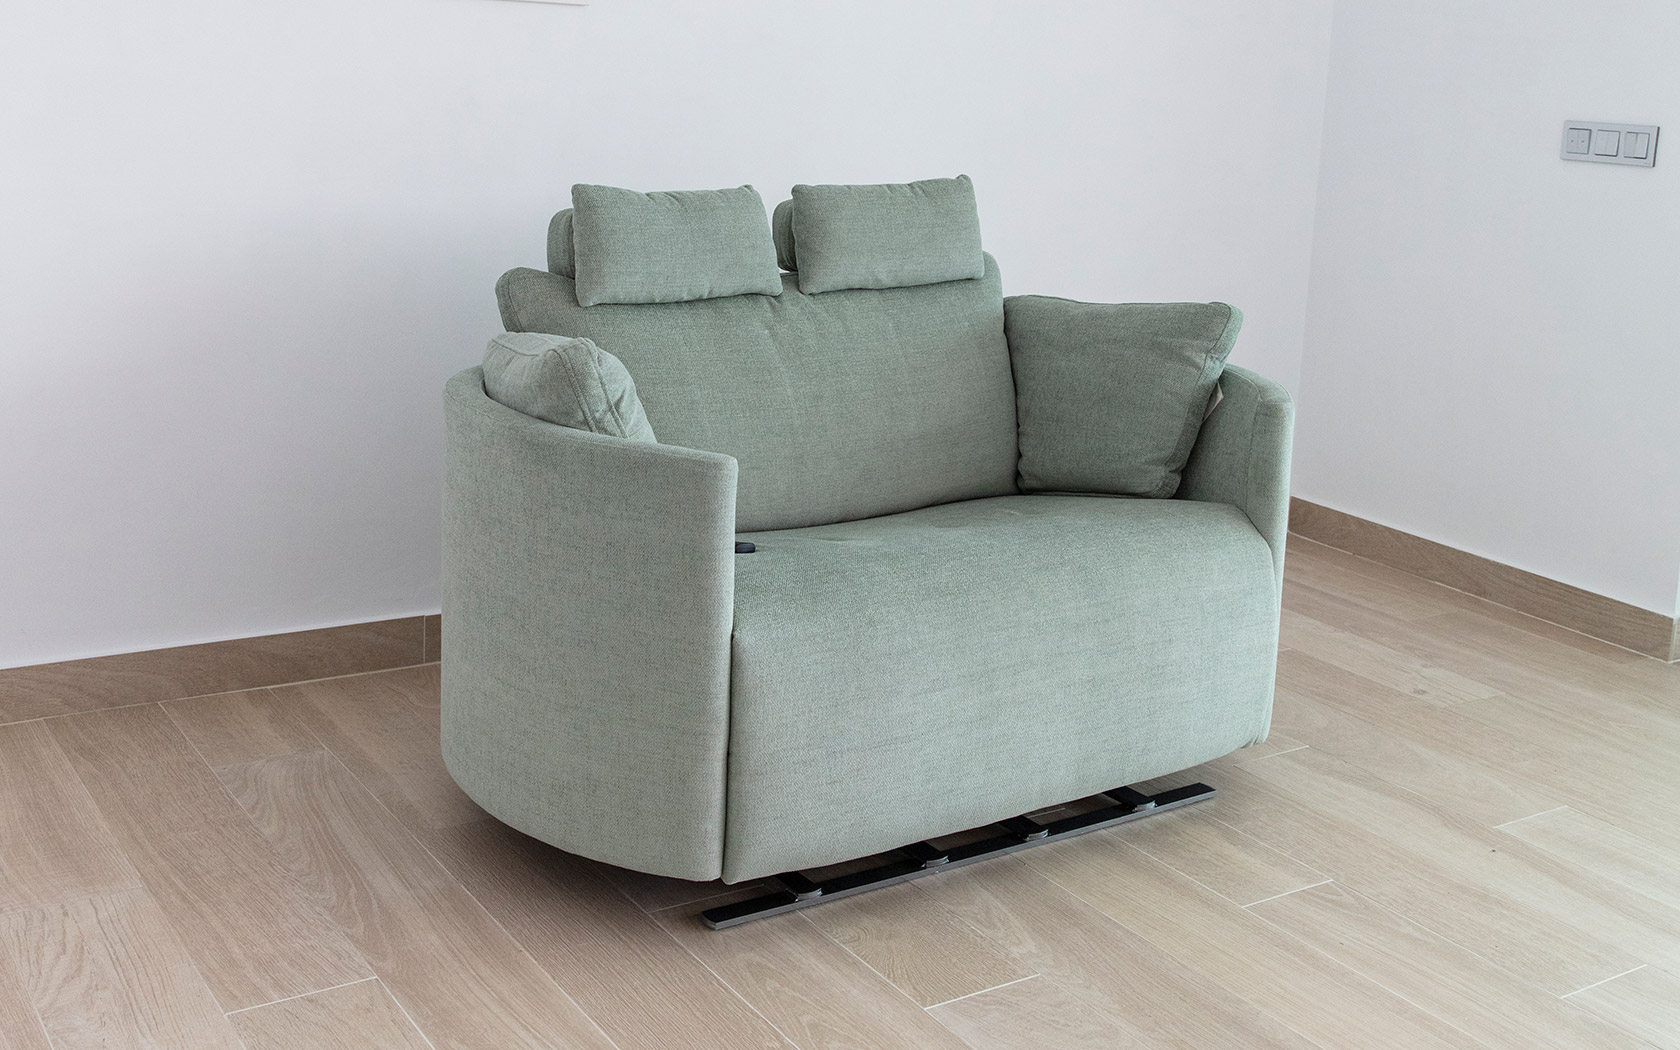 moonriseXL sillon 2021 01